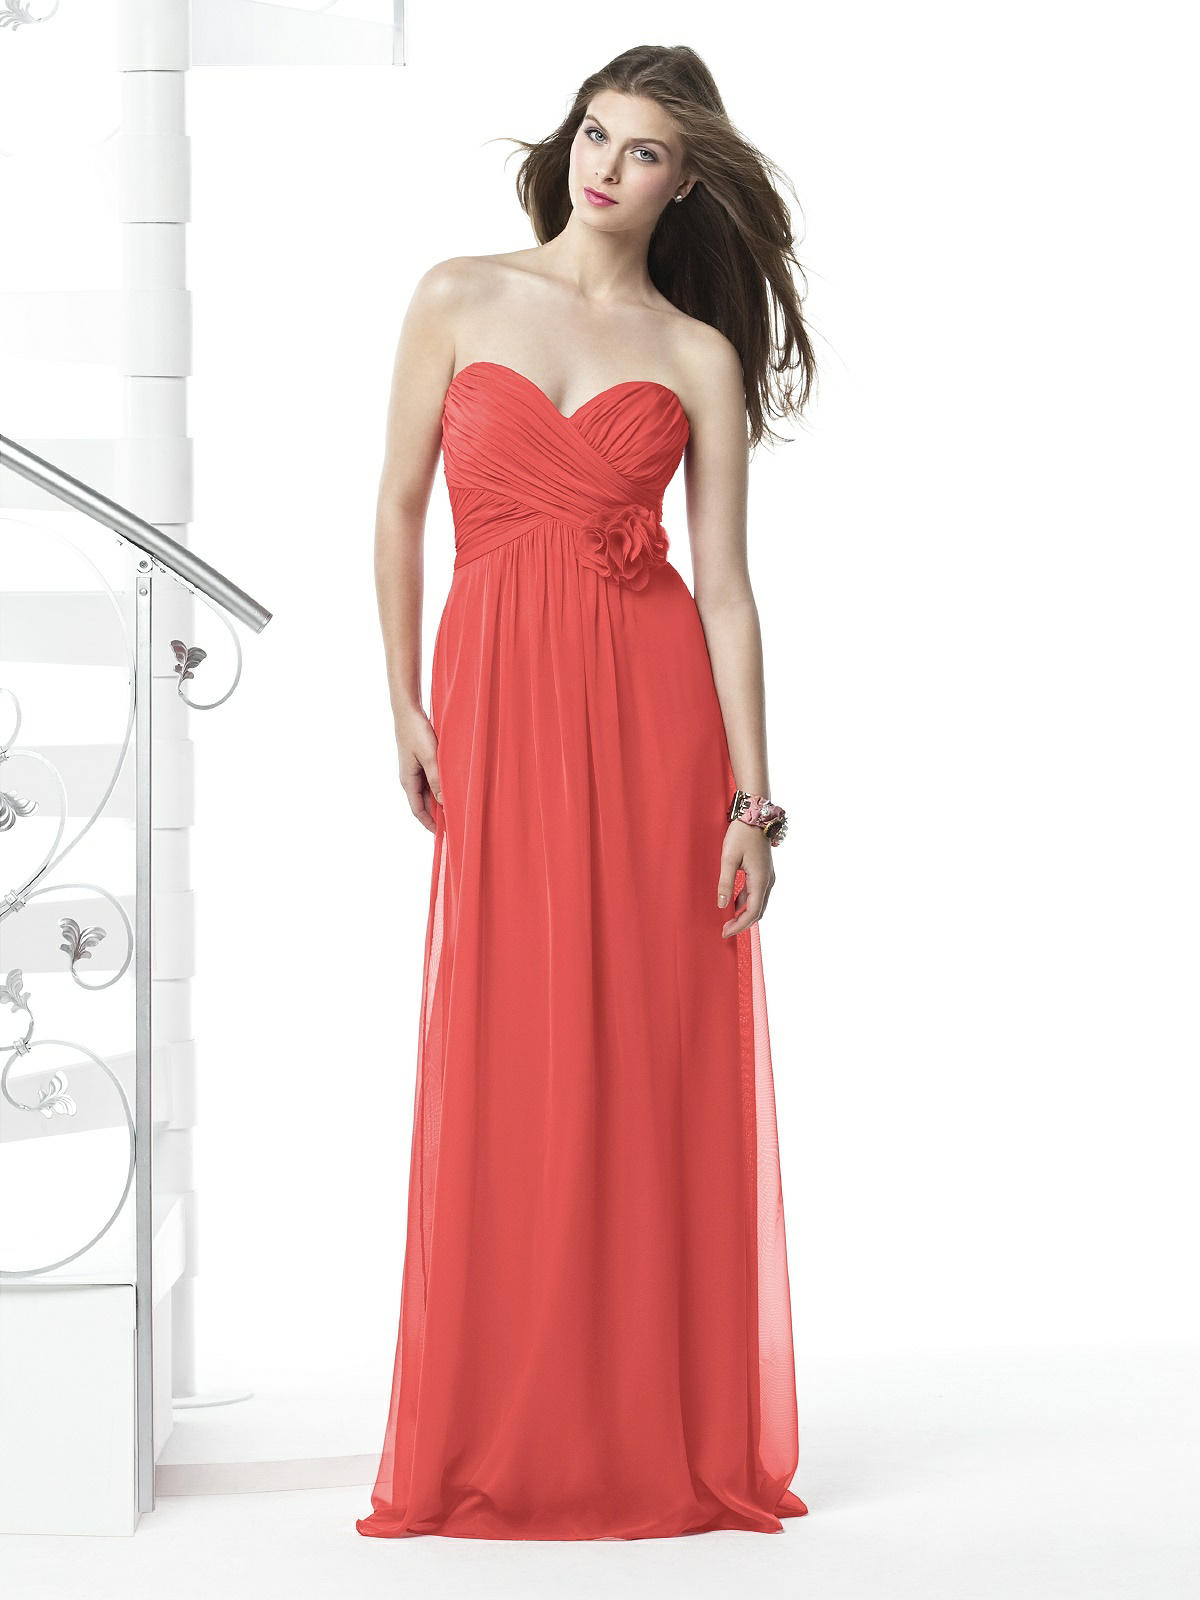 Price of dessy bridesmaid dresses gallery braidsmaid dress dessy bridesmaid dresses buy online uk wedding dress shops dessy bridesmaid dresses buy online uk 89 ombrellifo Gallery